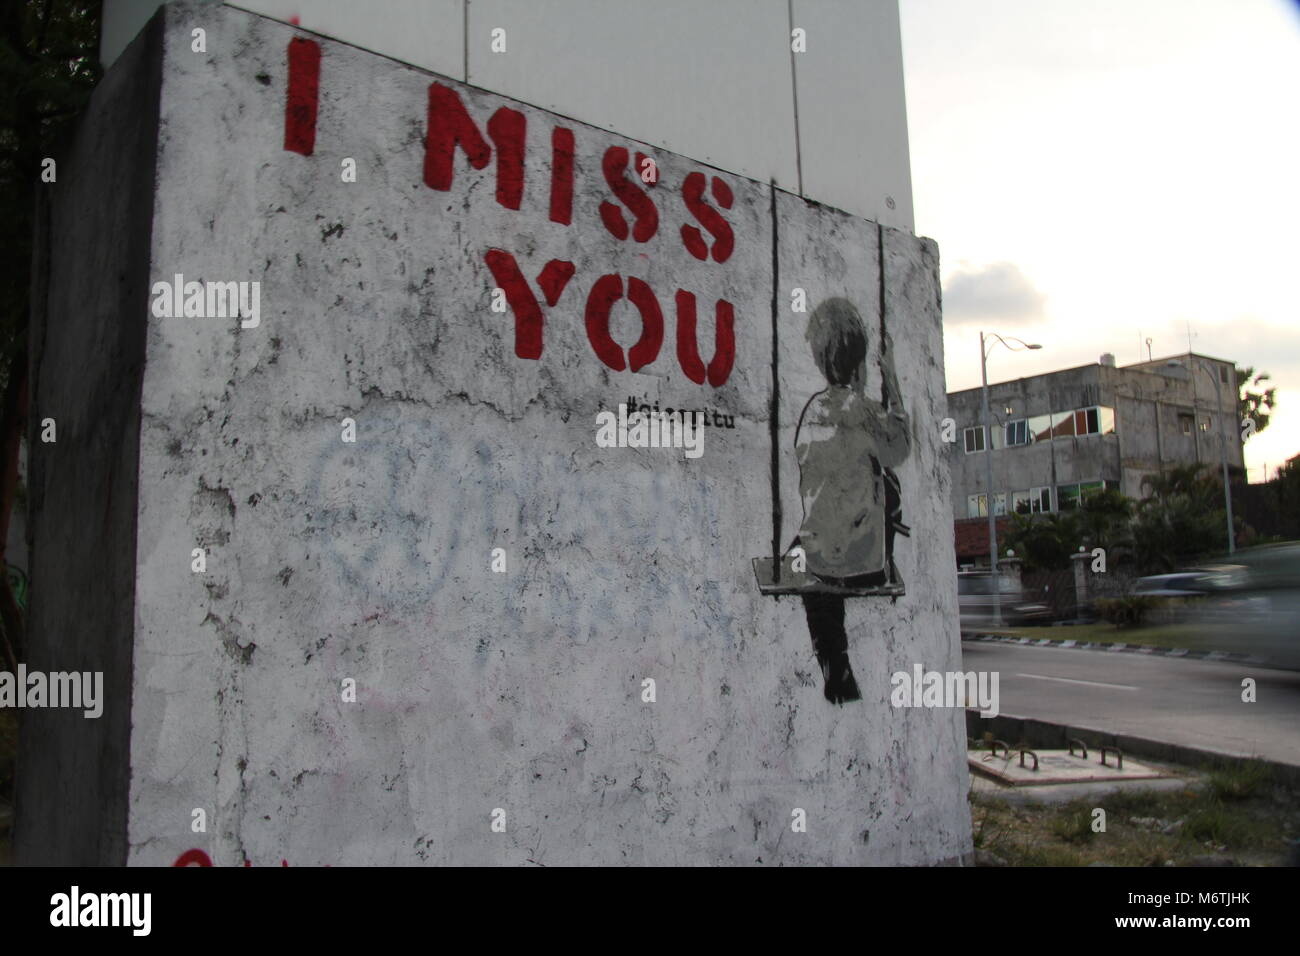 Bali Graffiti I Miss You And Banksy Like Stencil Of Child On A